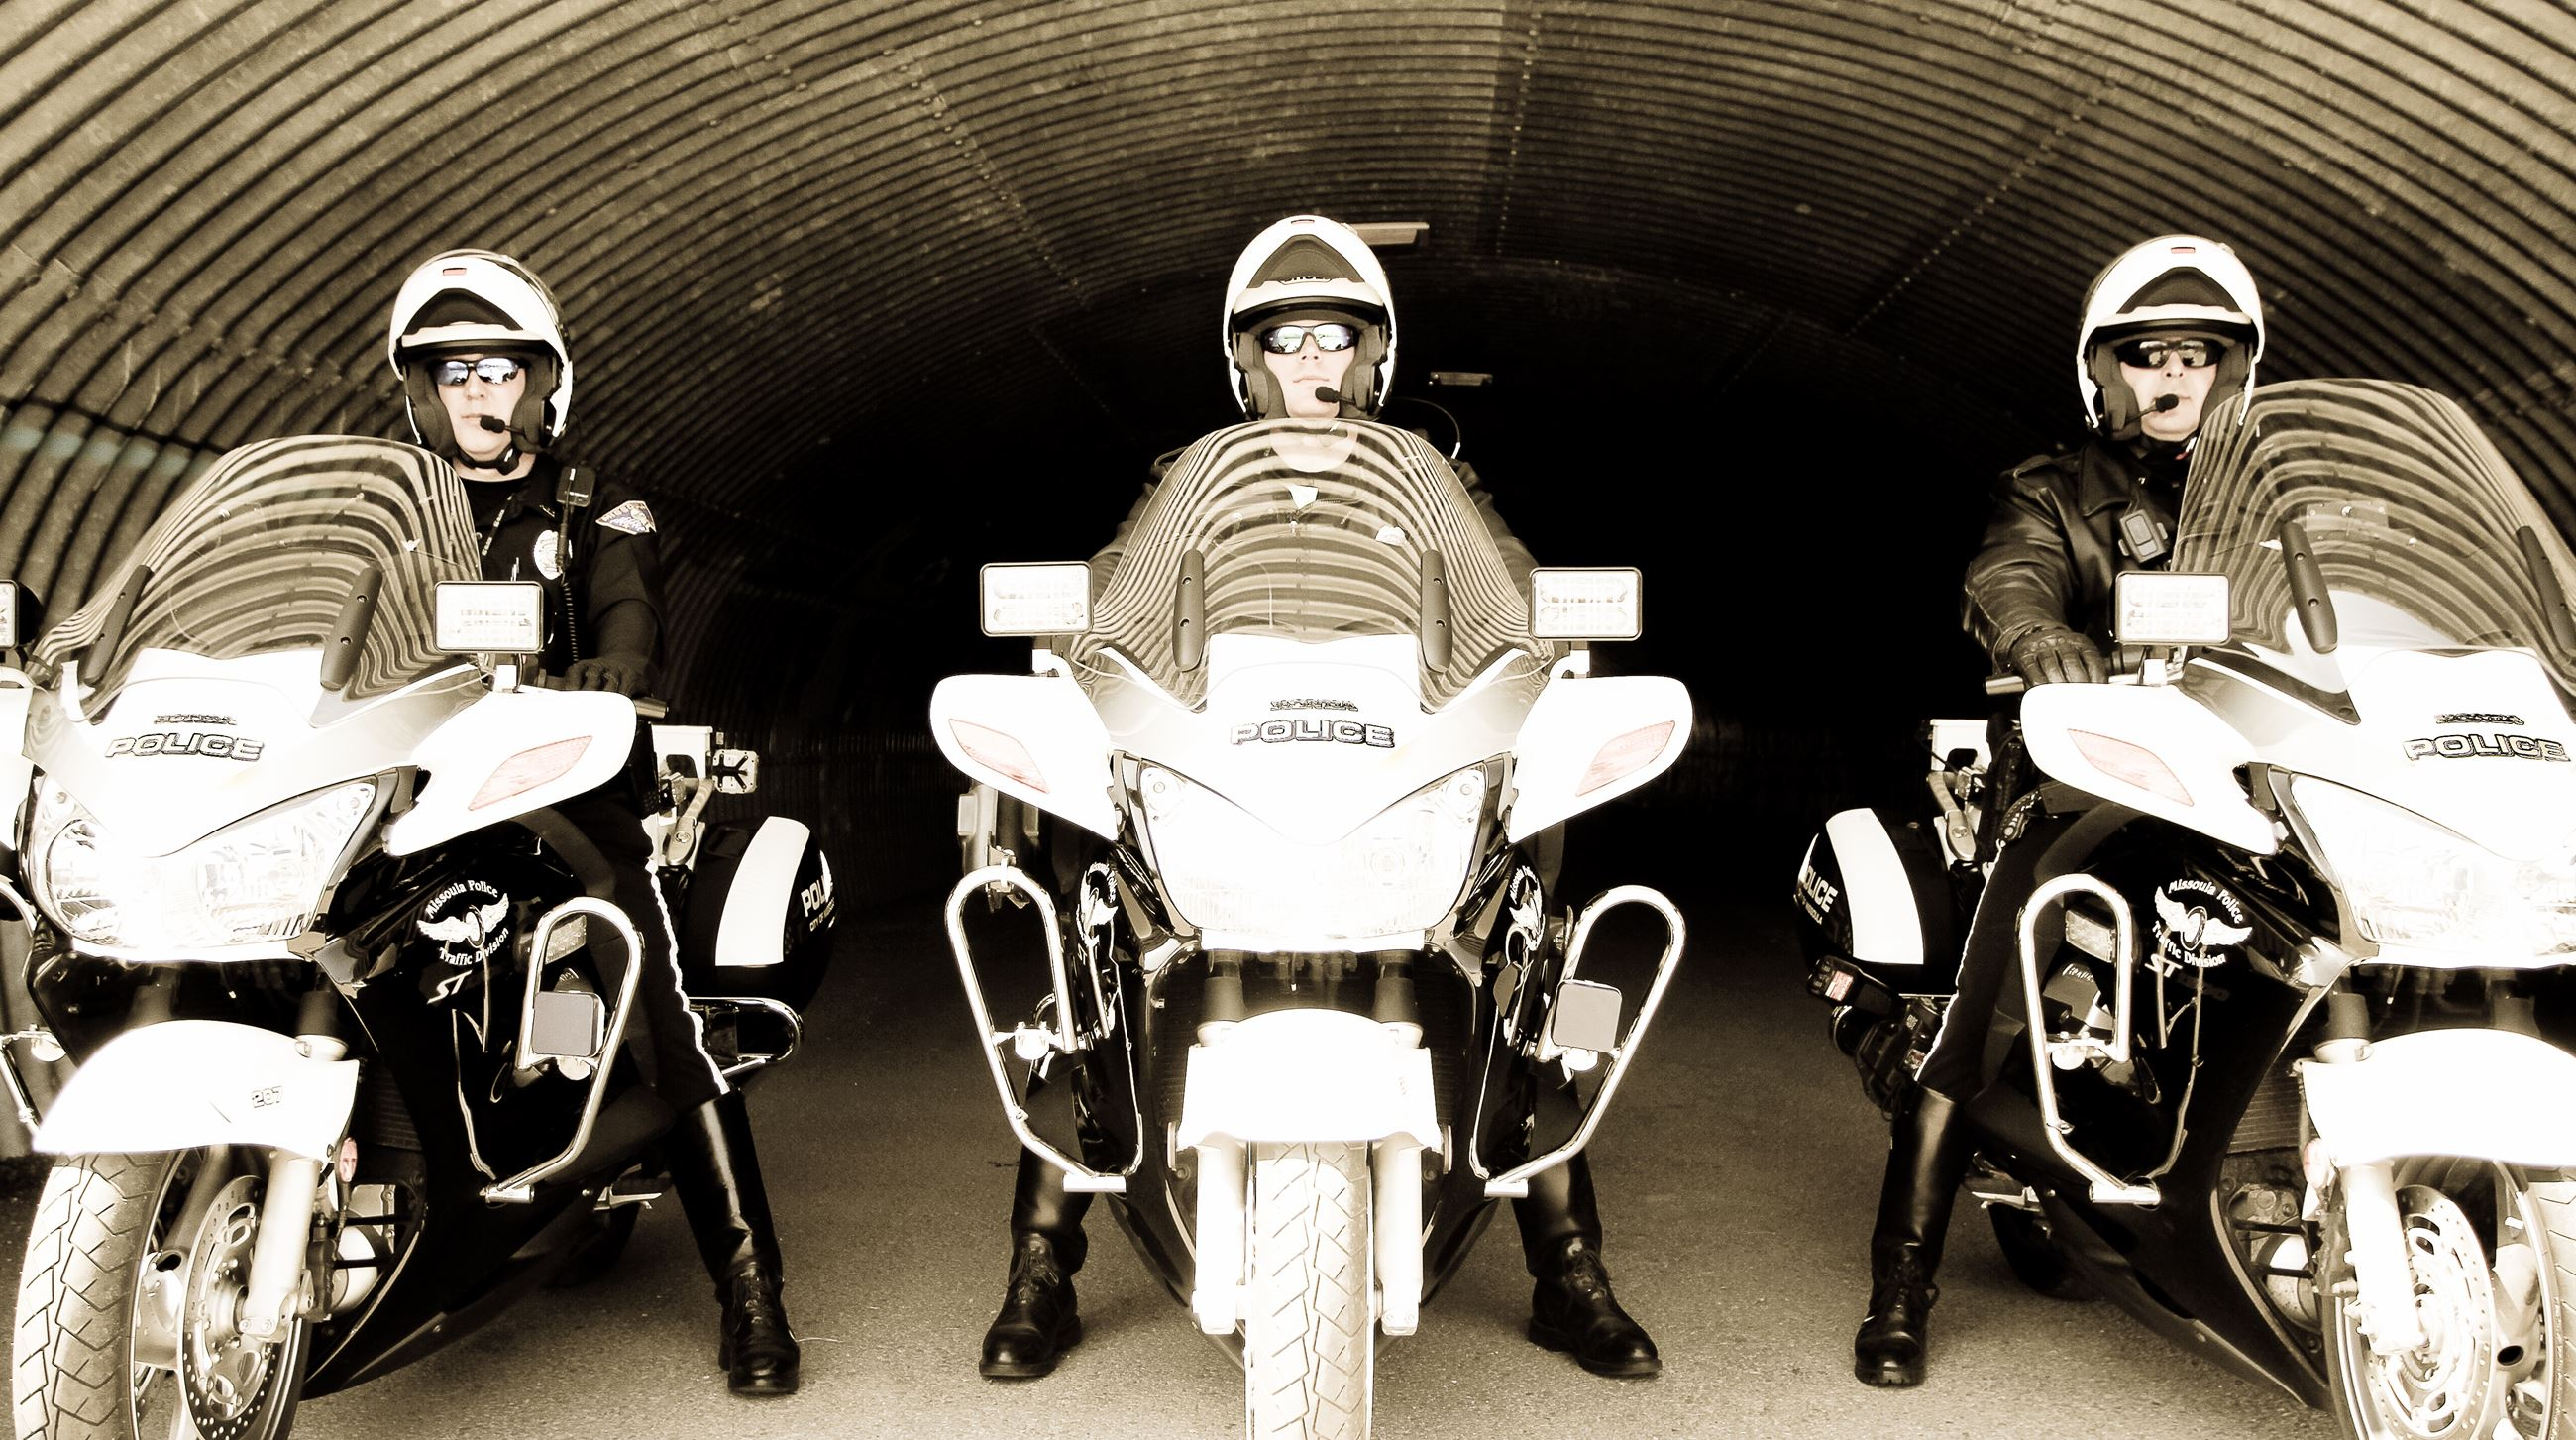 MPD Motor Officers